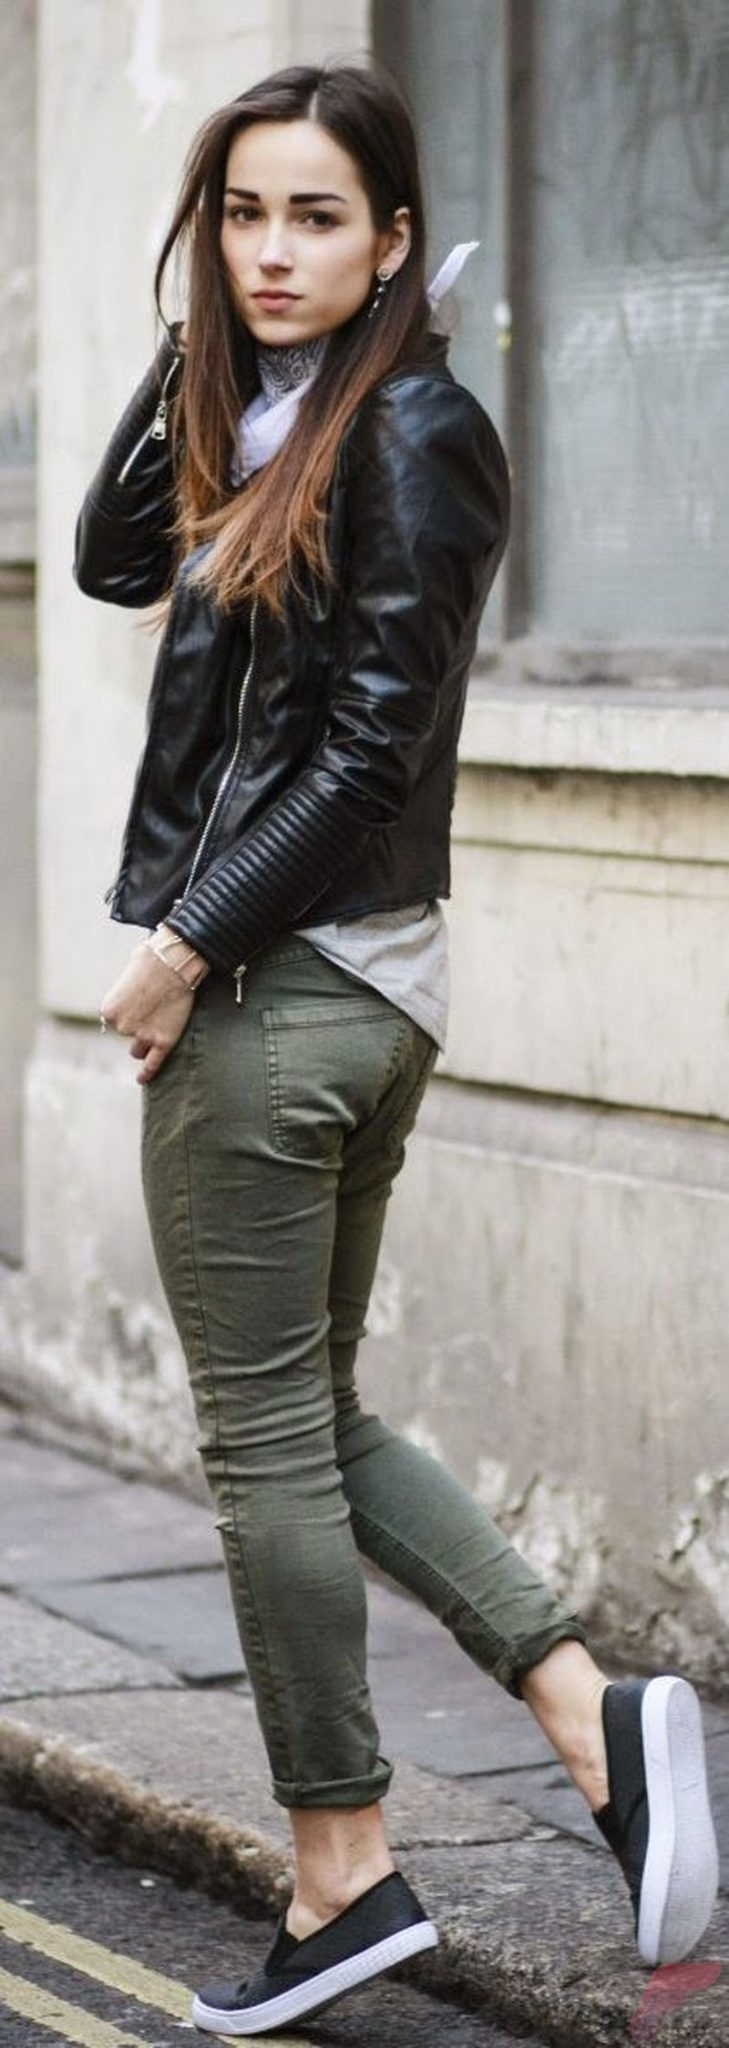 Black leather jacket outfit 6